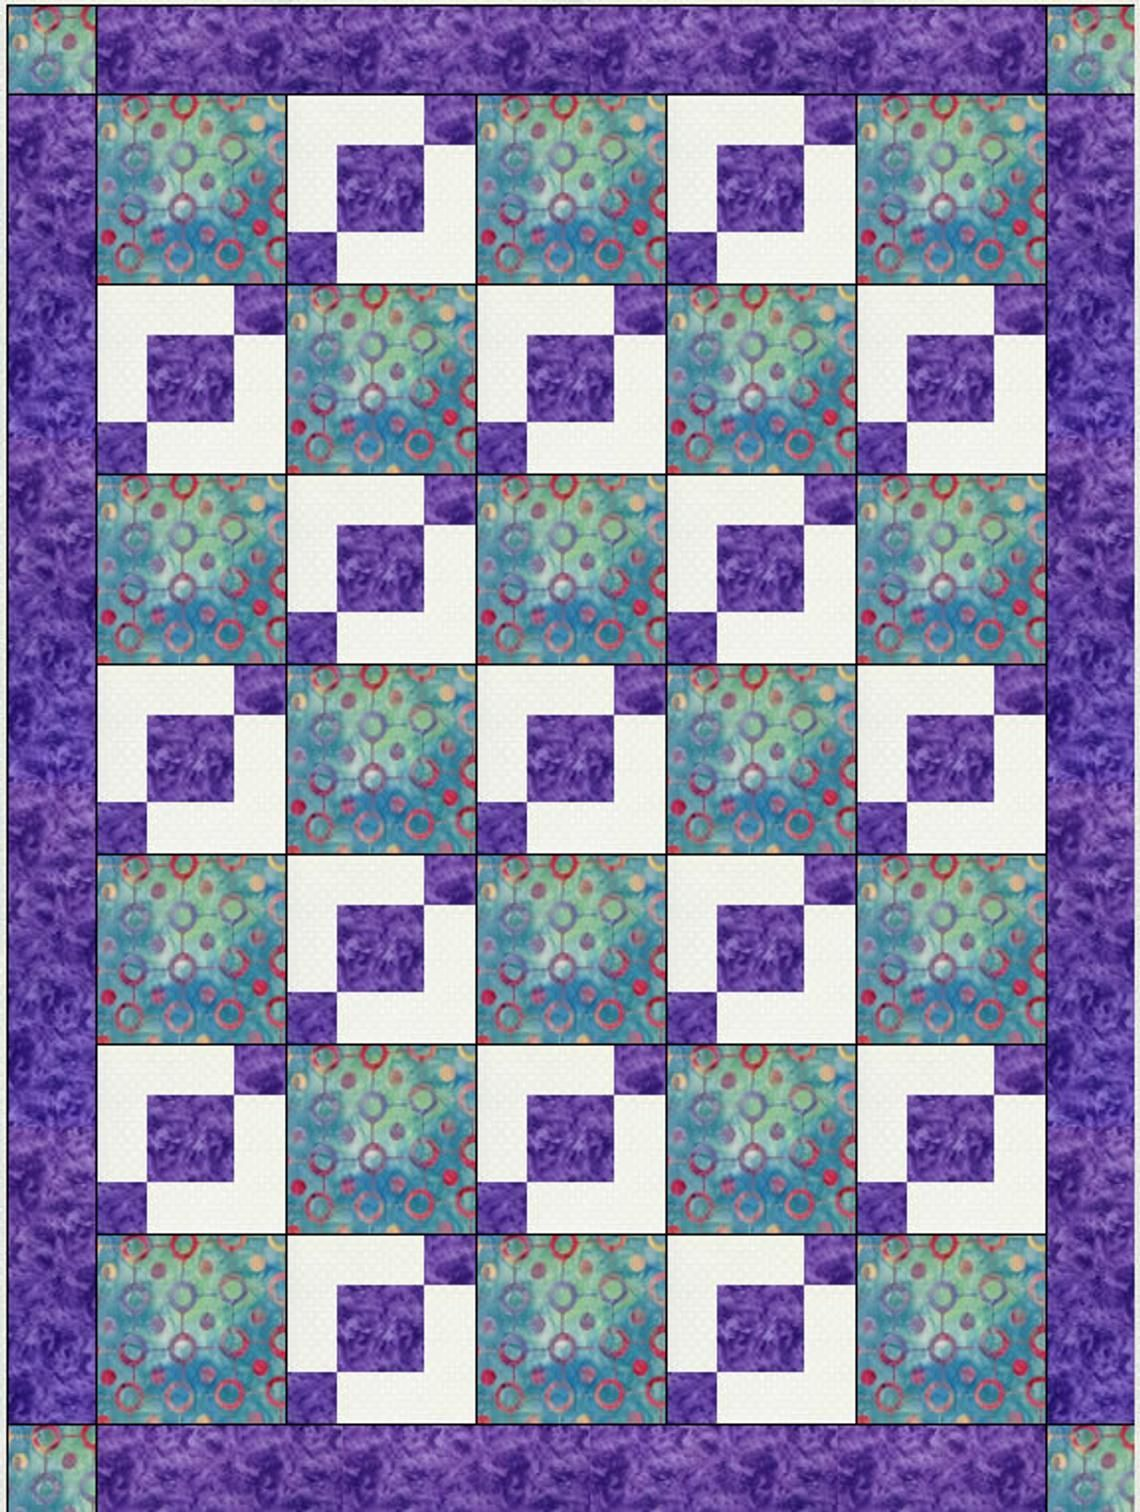 Downloadable Stepping Stones Quilt Pattern Easy 3 Yard Design 8211 Quilt Block Patterns In 2020 Quilt Block Patterns Easy Quilt Patterns Quilt Patterns